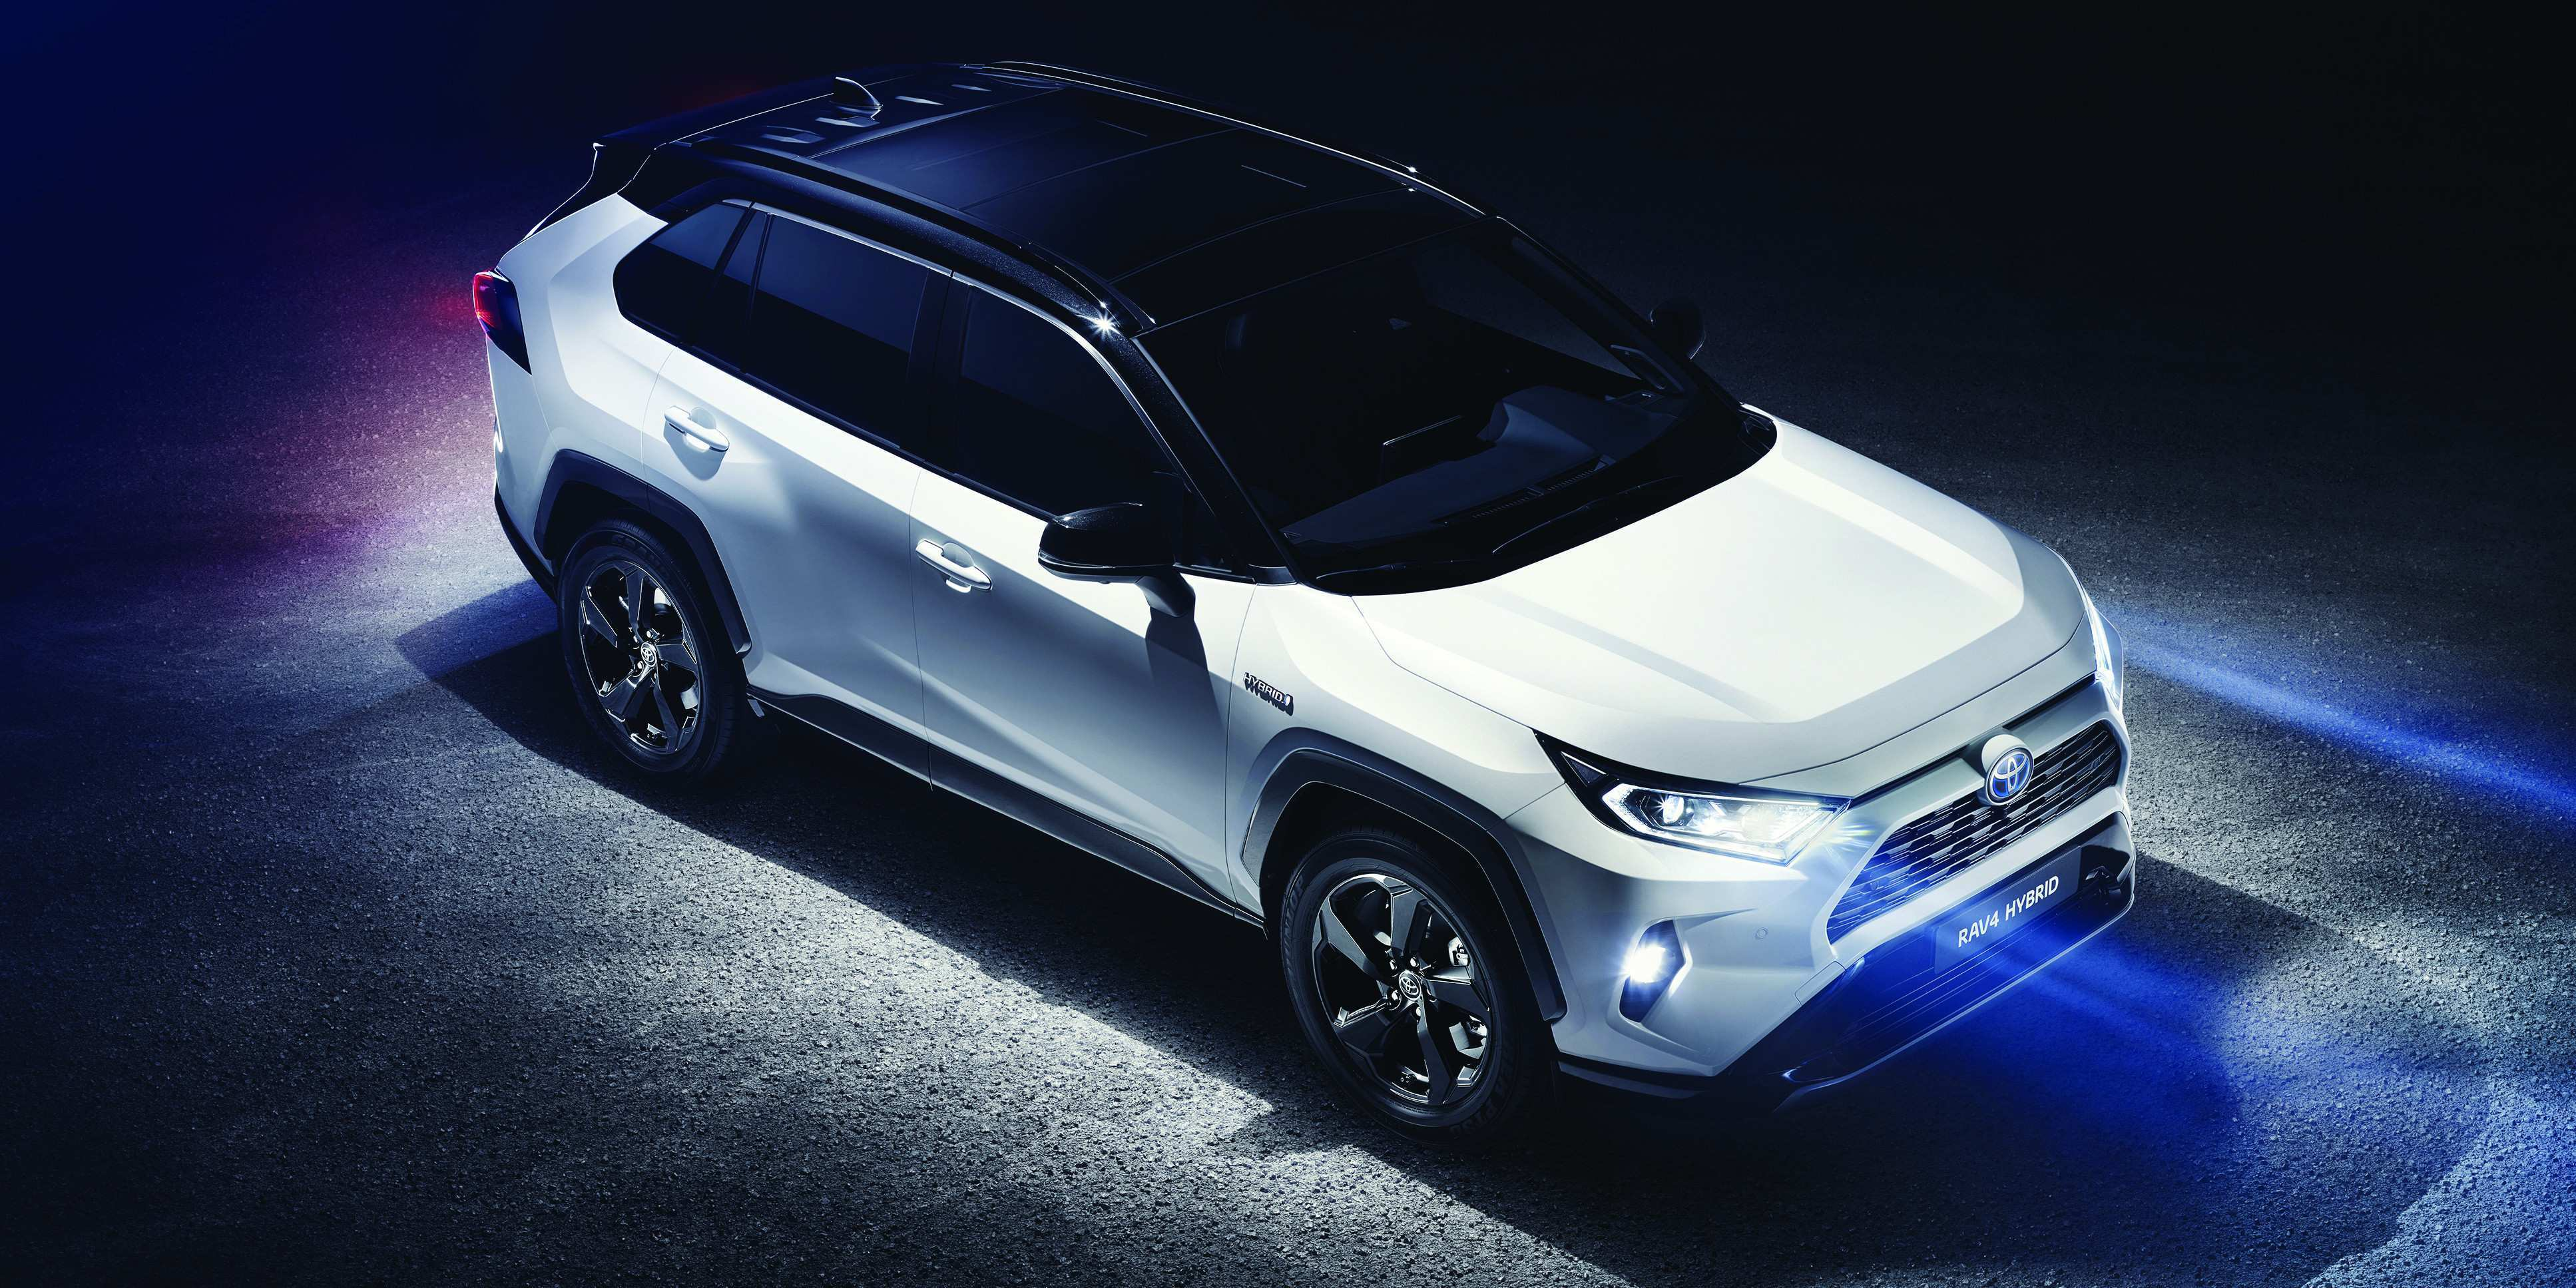 26 Great The Rav Toyota 2019 Price Specs Ratings for The Rav Toyota 2019 Price Specs